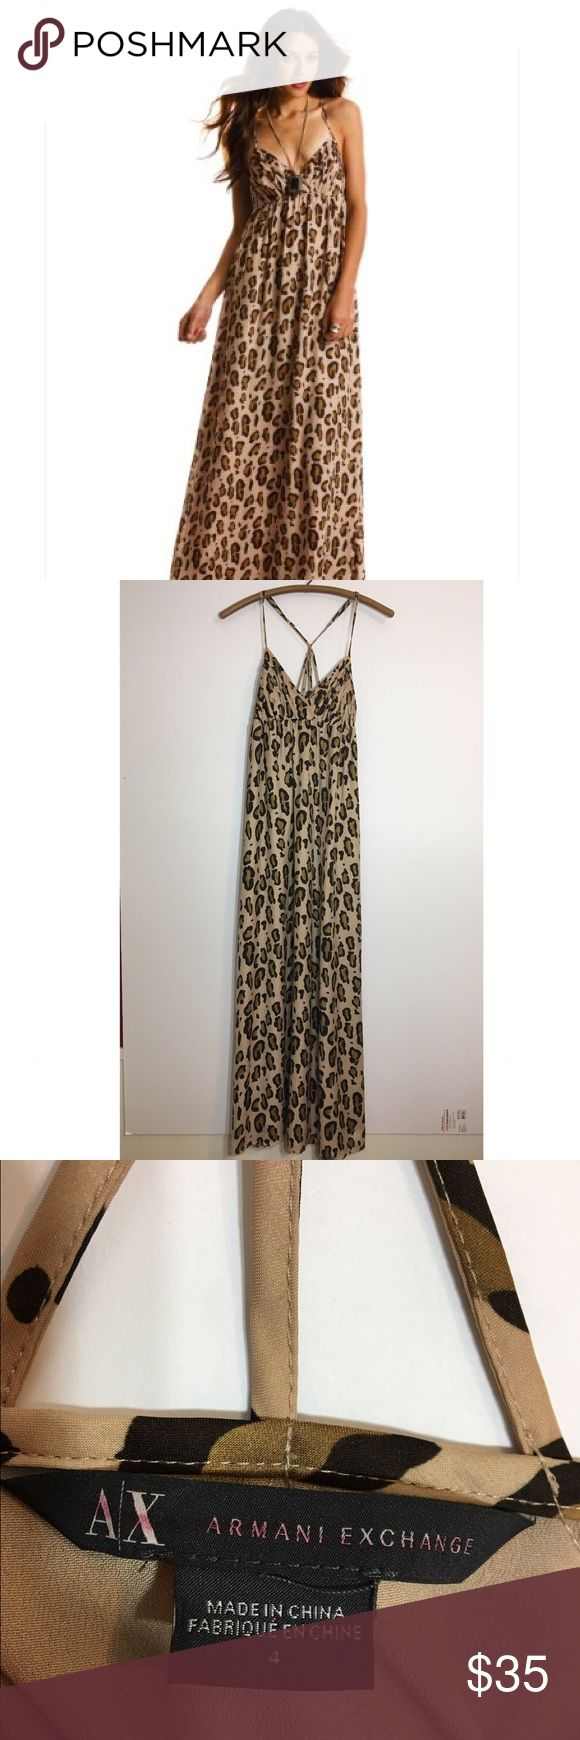 Armani Exchange Leopard Maxi dress Cute. Light wear. Small stain on upper back pictured A/X Armani Exchange Dresses Maxi